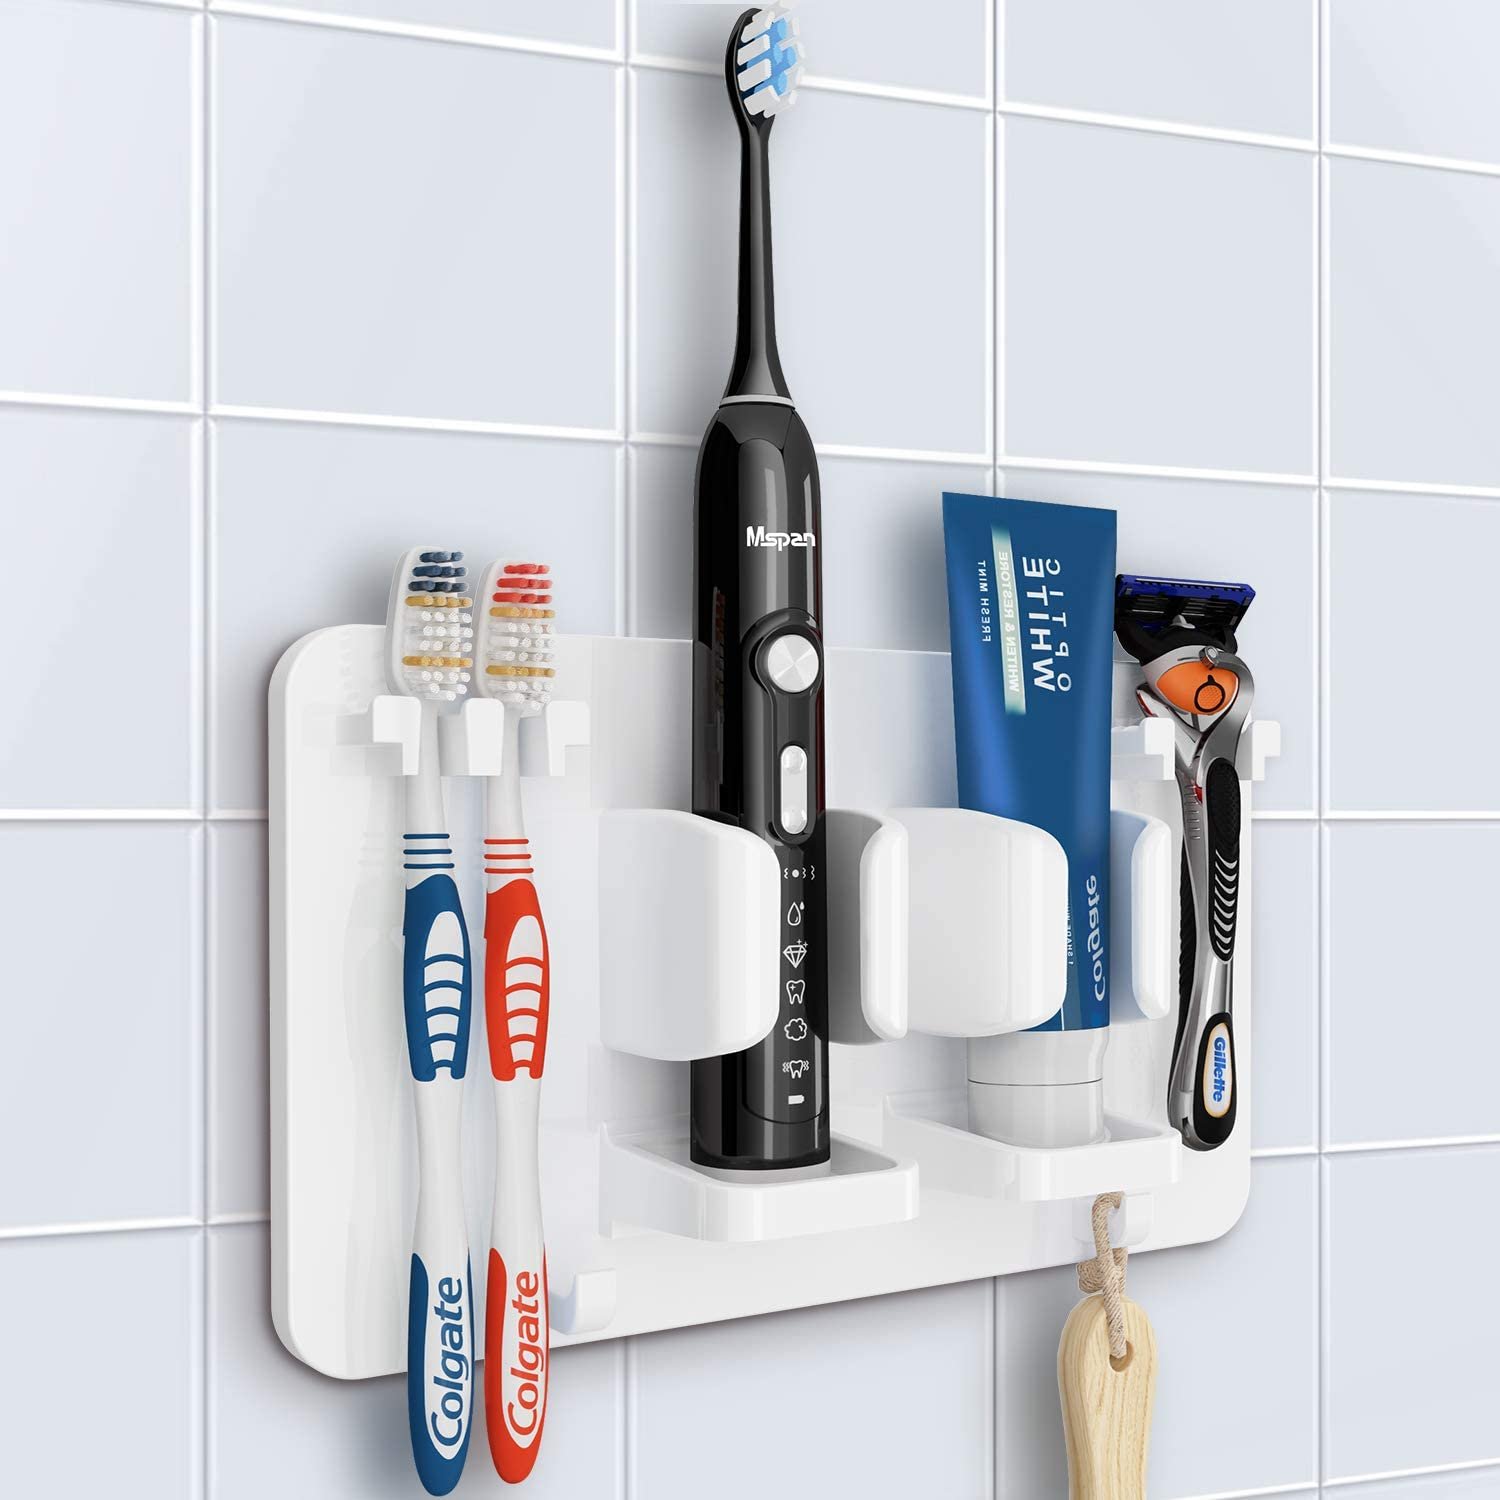 Mspan Toothbrush Razor Holder for Shower: Wall Mounted